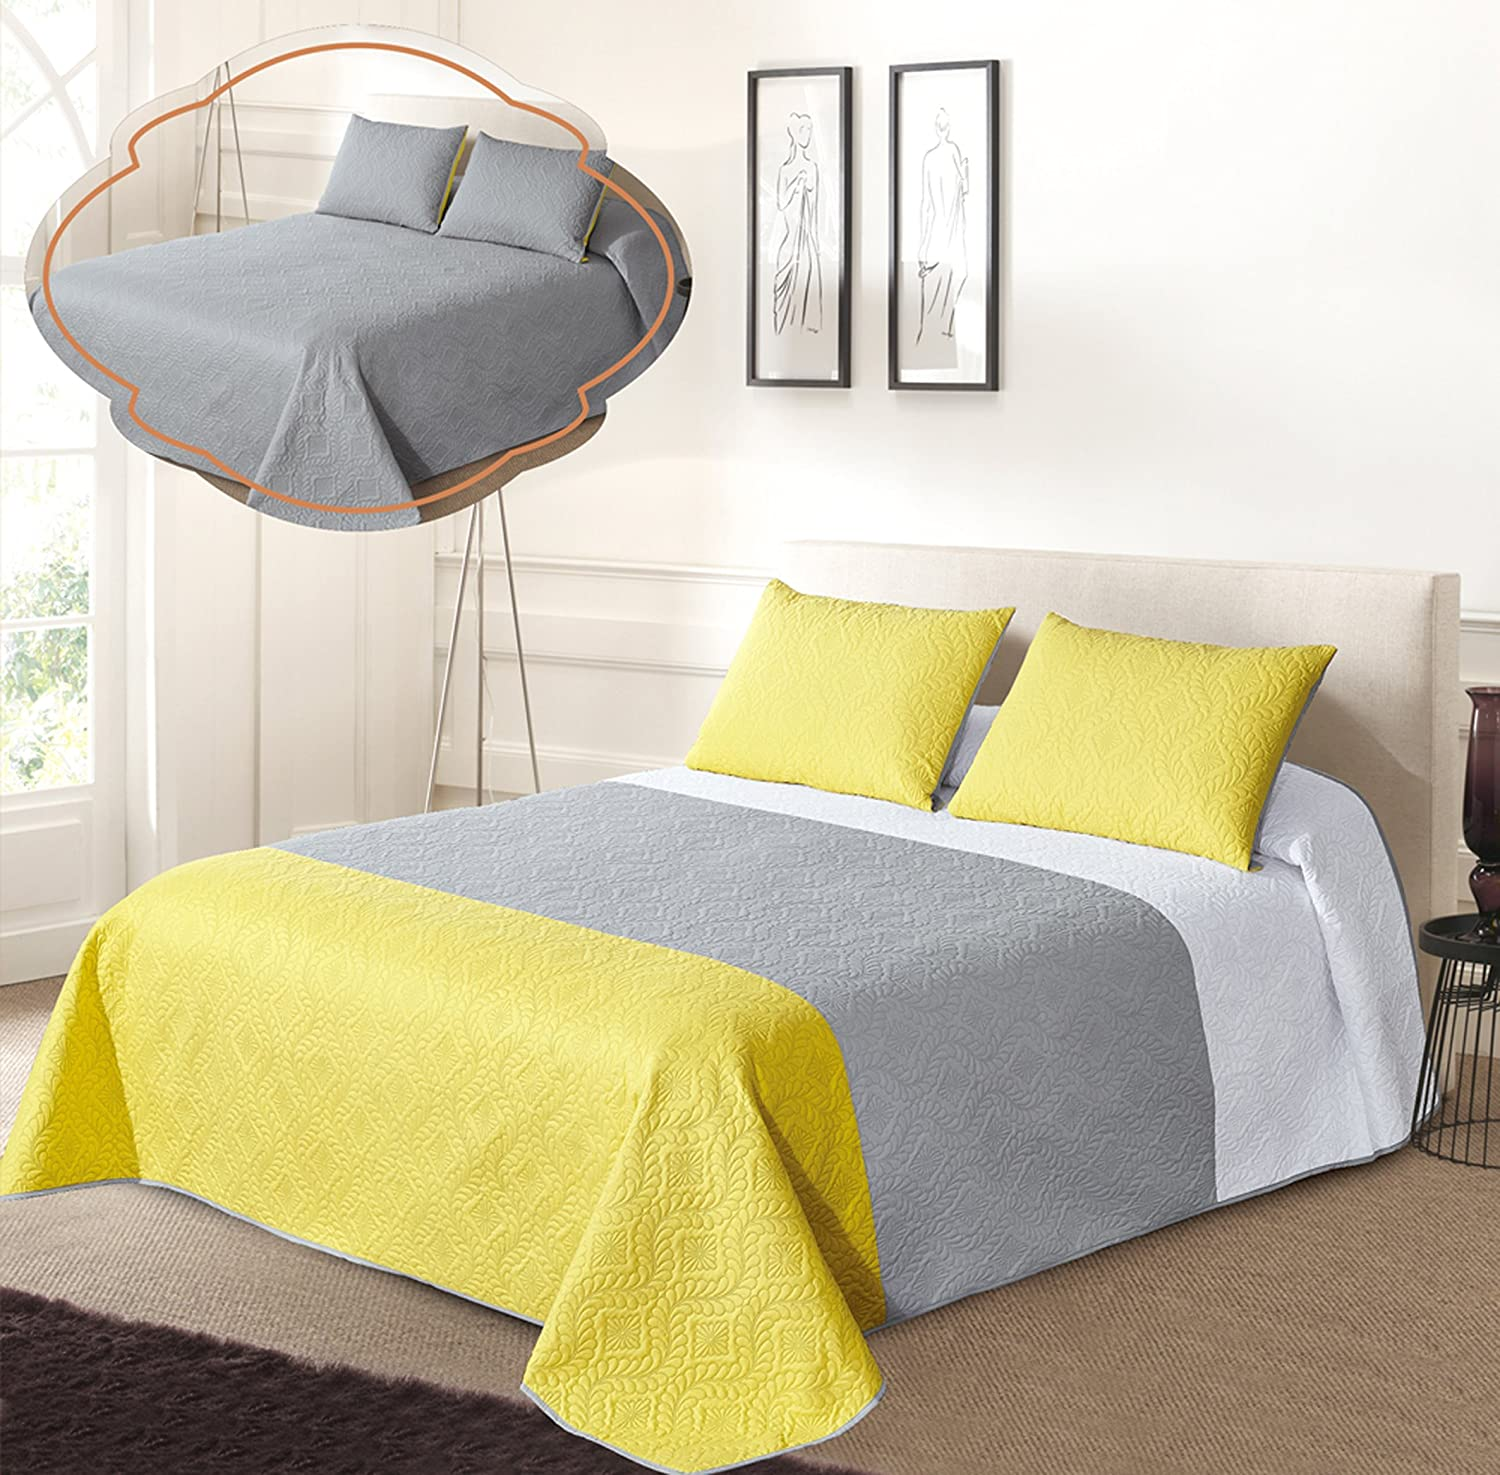 Reversible Bedspread Set (FULL/ QUEEN, White/Grey/Yellow